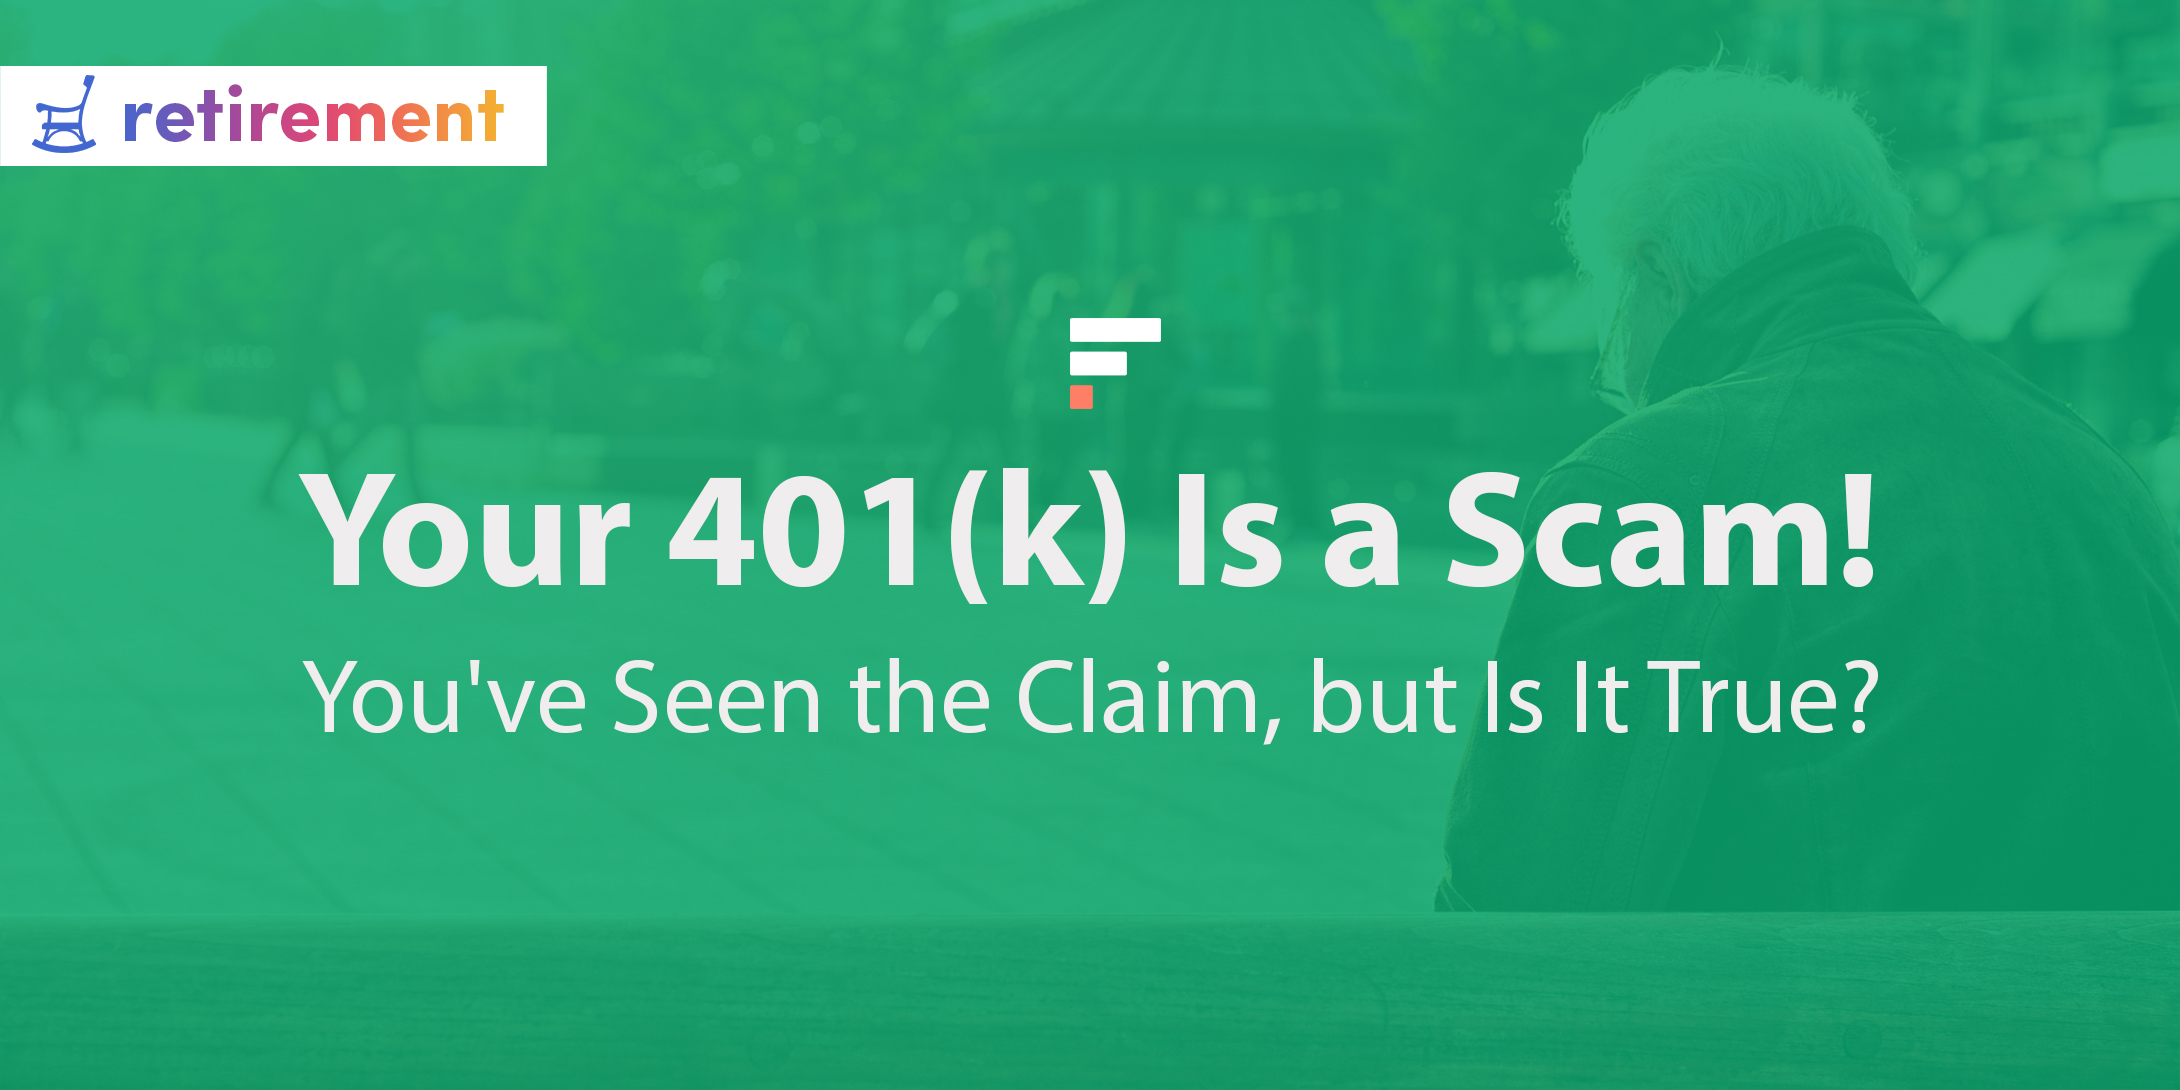 Your 401(k) Is a Scam! You've Seen the Claim, but Is It True?